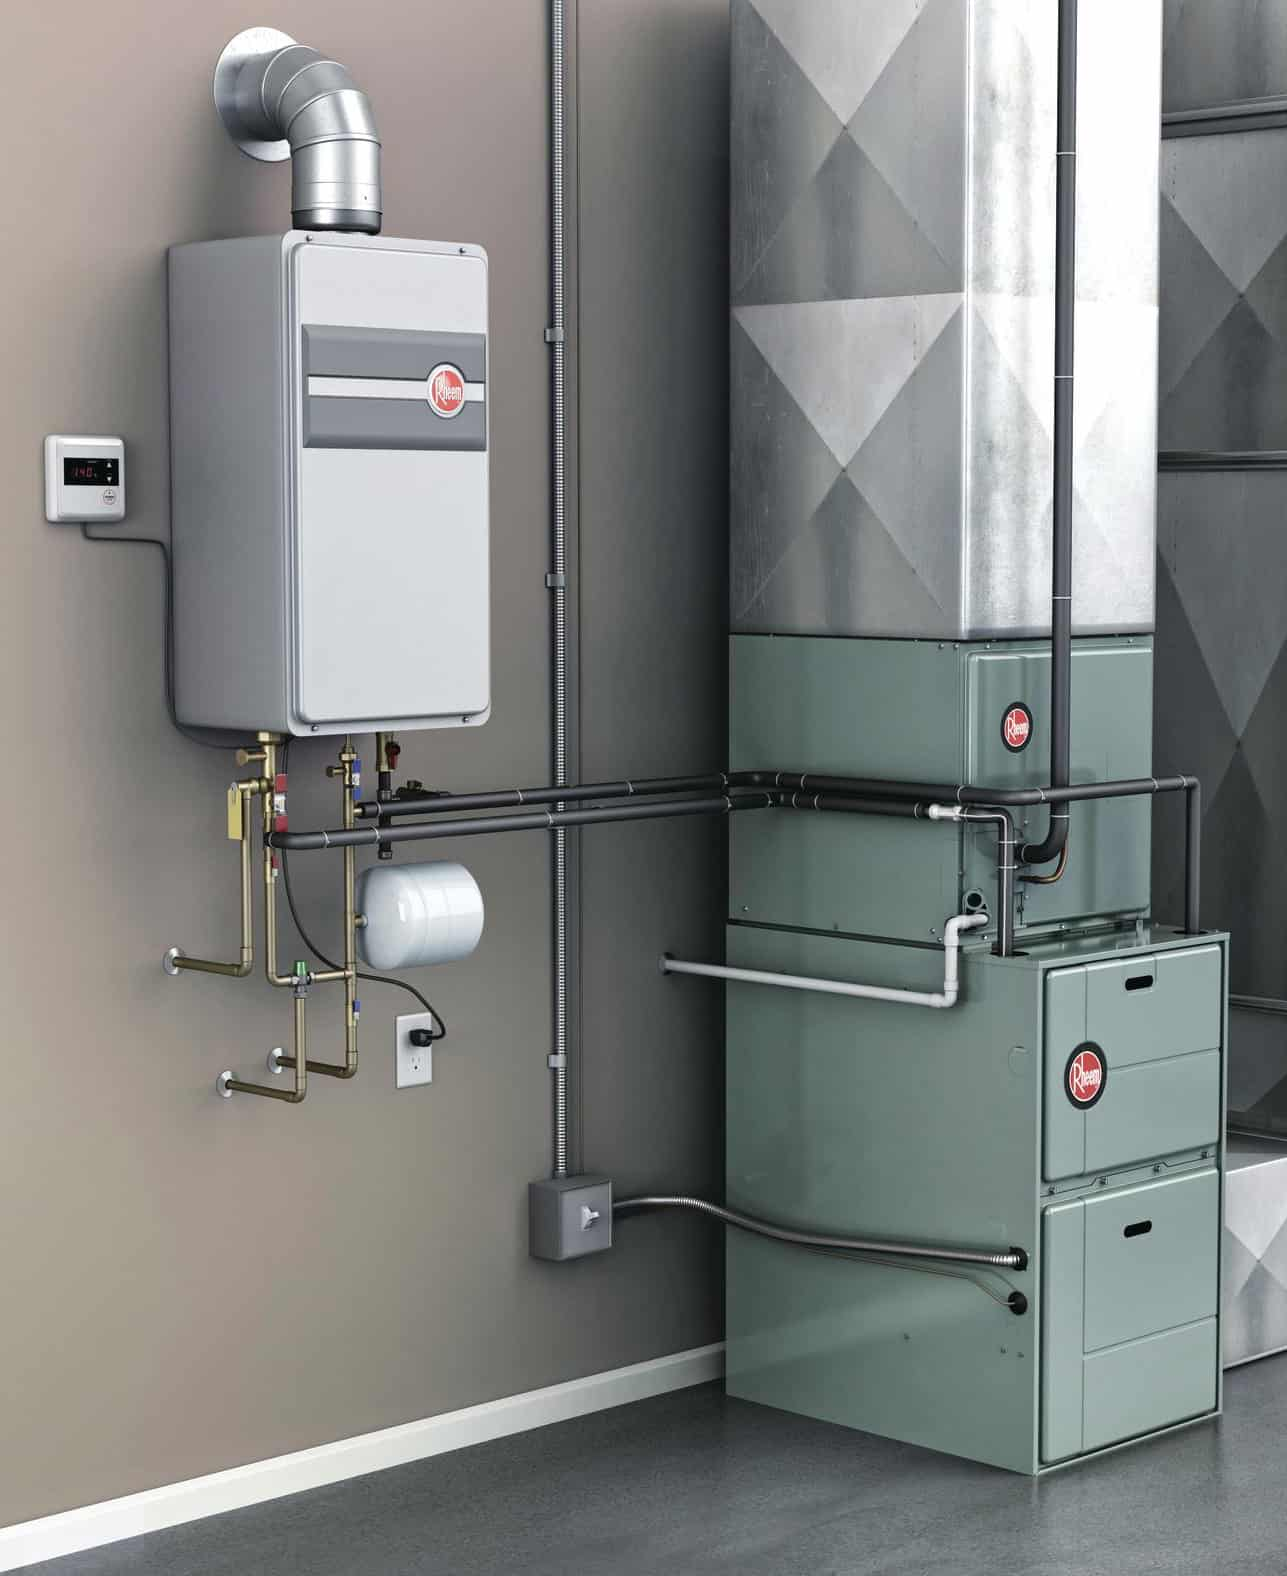 Rheem Tankless Water Heater Review Home Buying Checklist